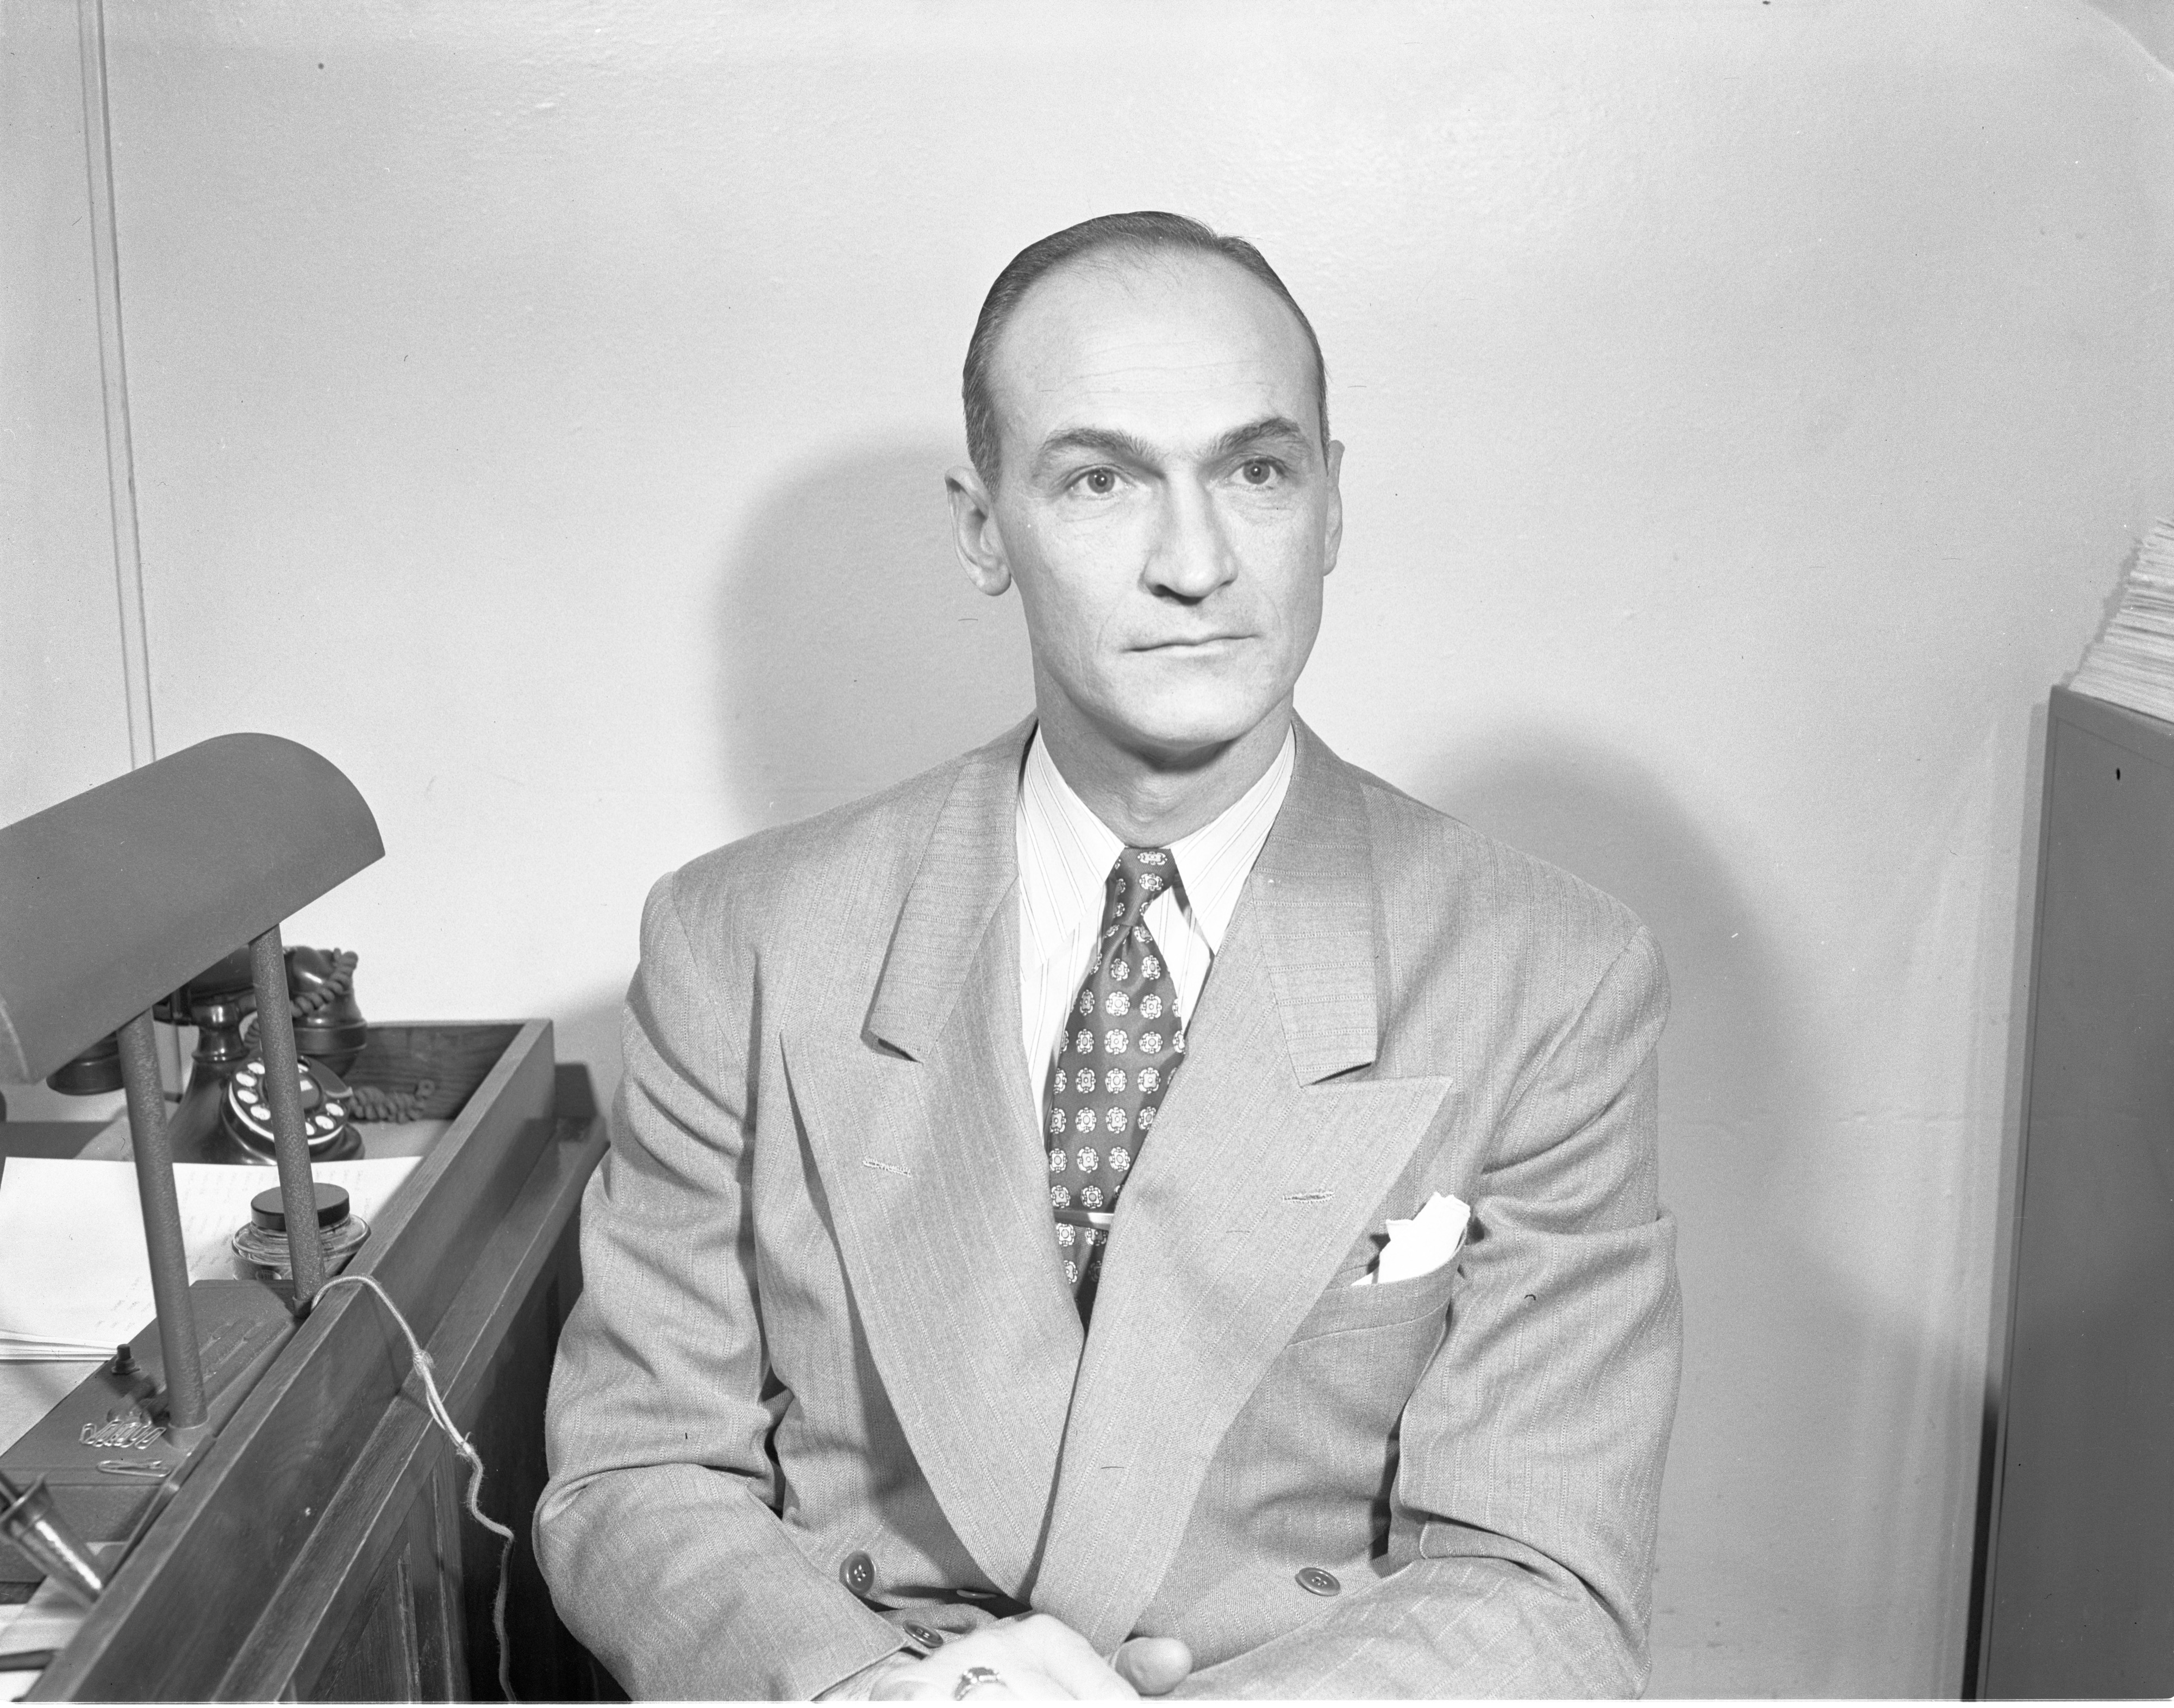 Kip Taylor Visiting Ann Arbor High School, January 1950 image